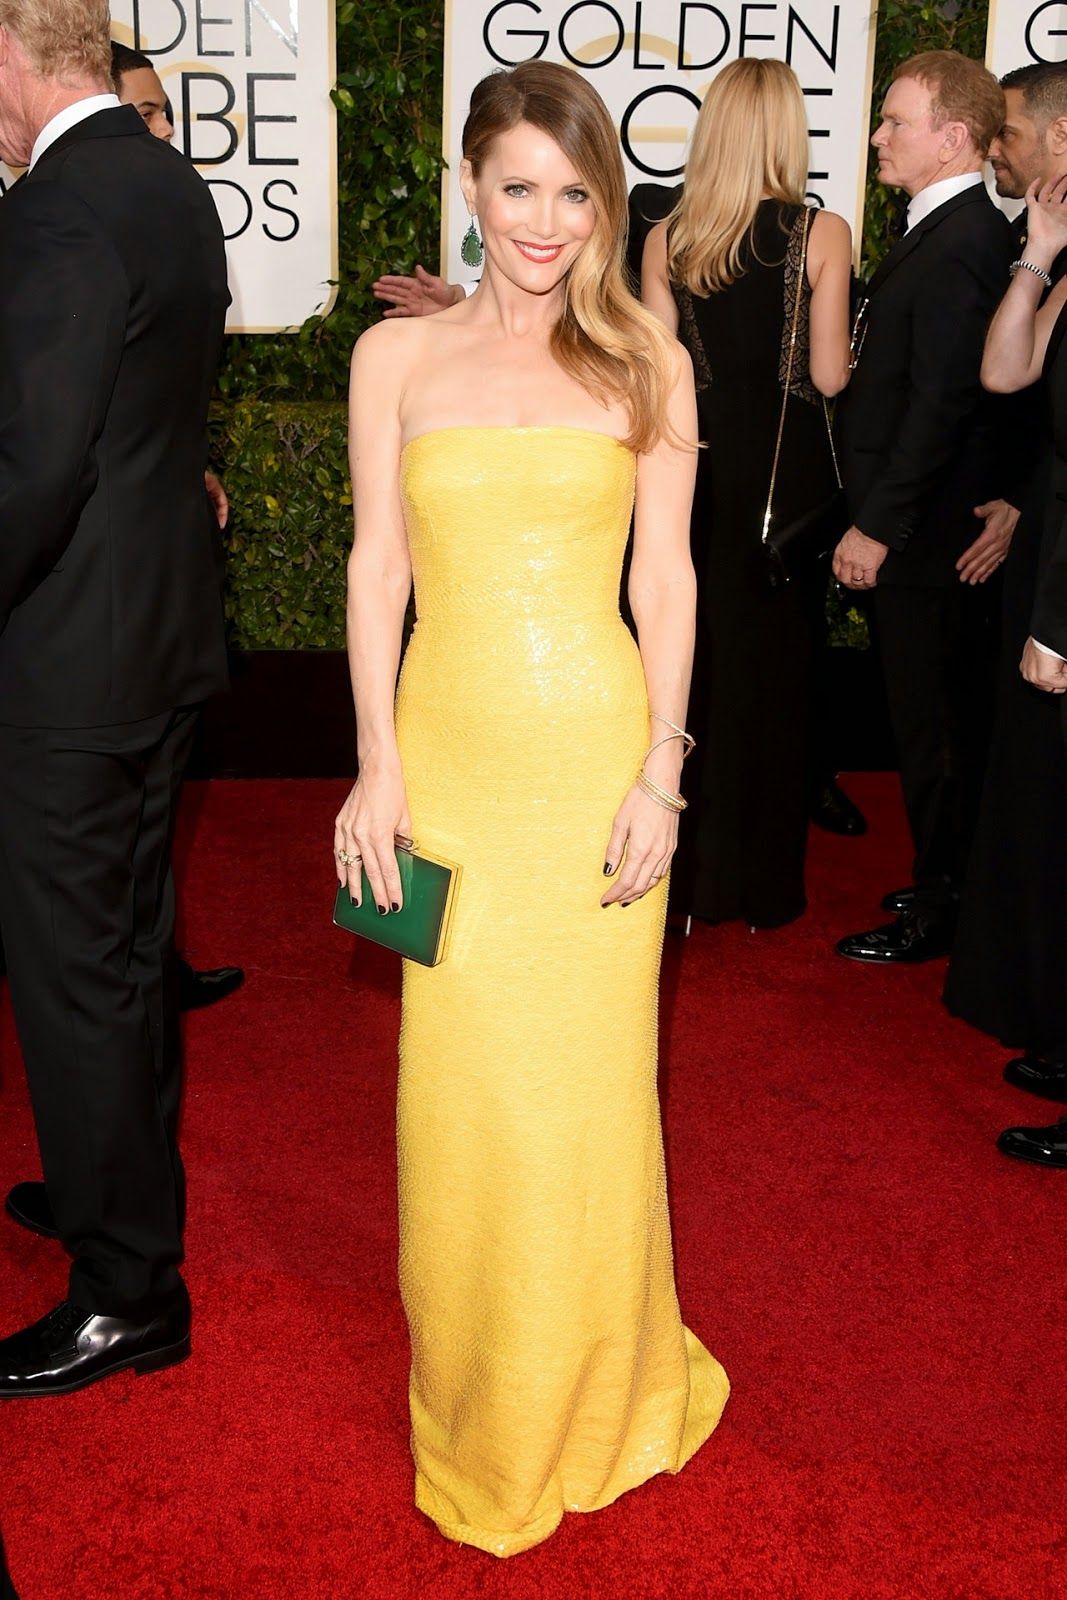 Leslie Mann in yellow gown at the Golden Globe Awards 2015